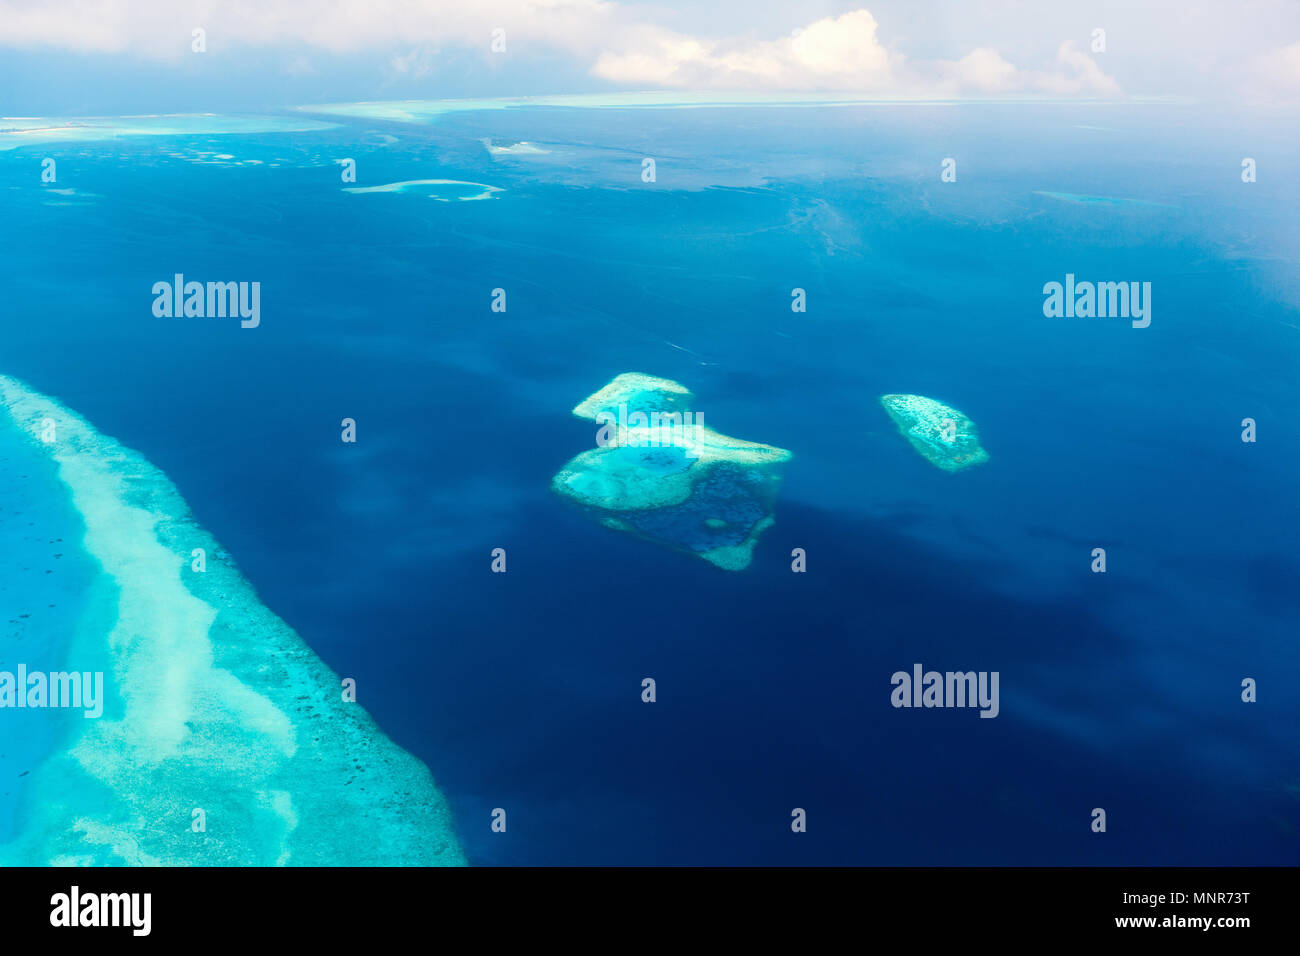 Aerial view of Maldives atoll and reefs seen from a sea plane - Stock Image